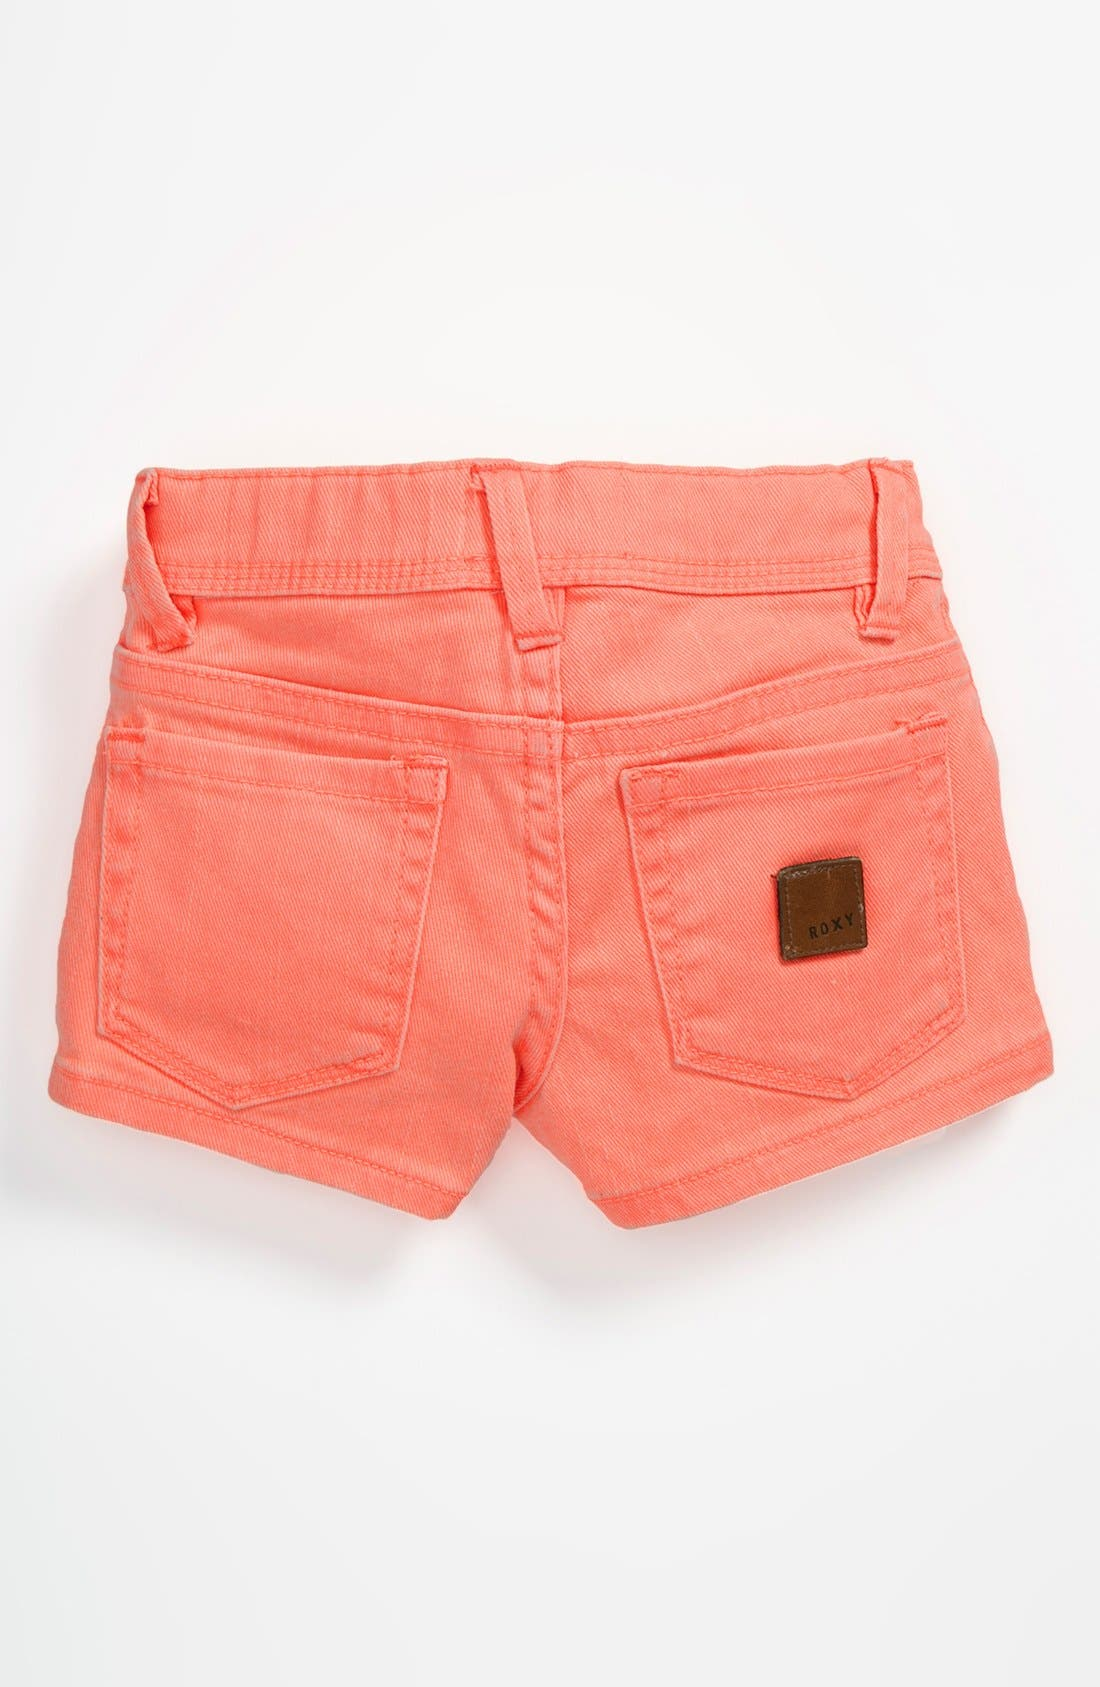 Main Image - Roxy 'Ferris Wheel' Denim Shorts (Little Girls)